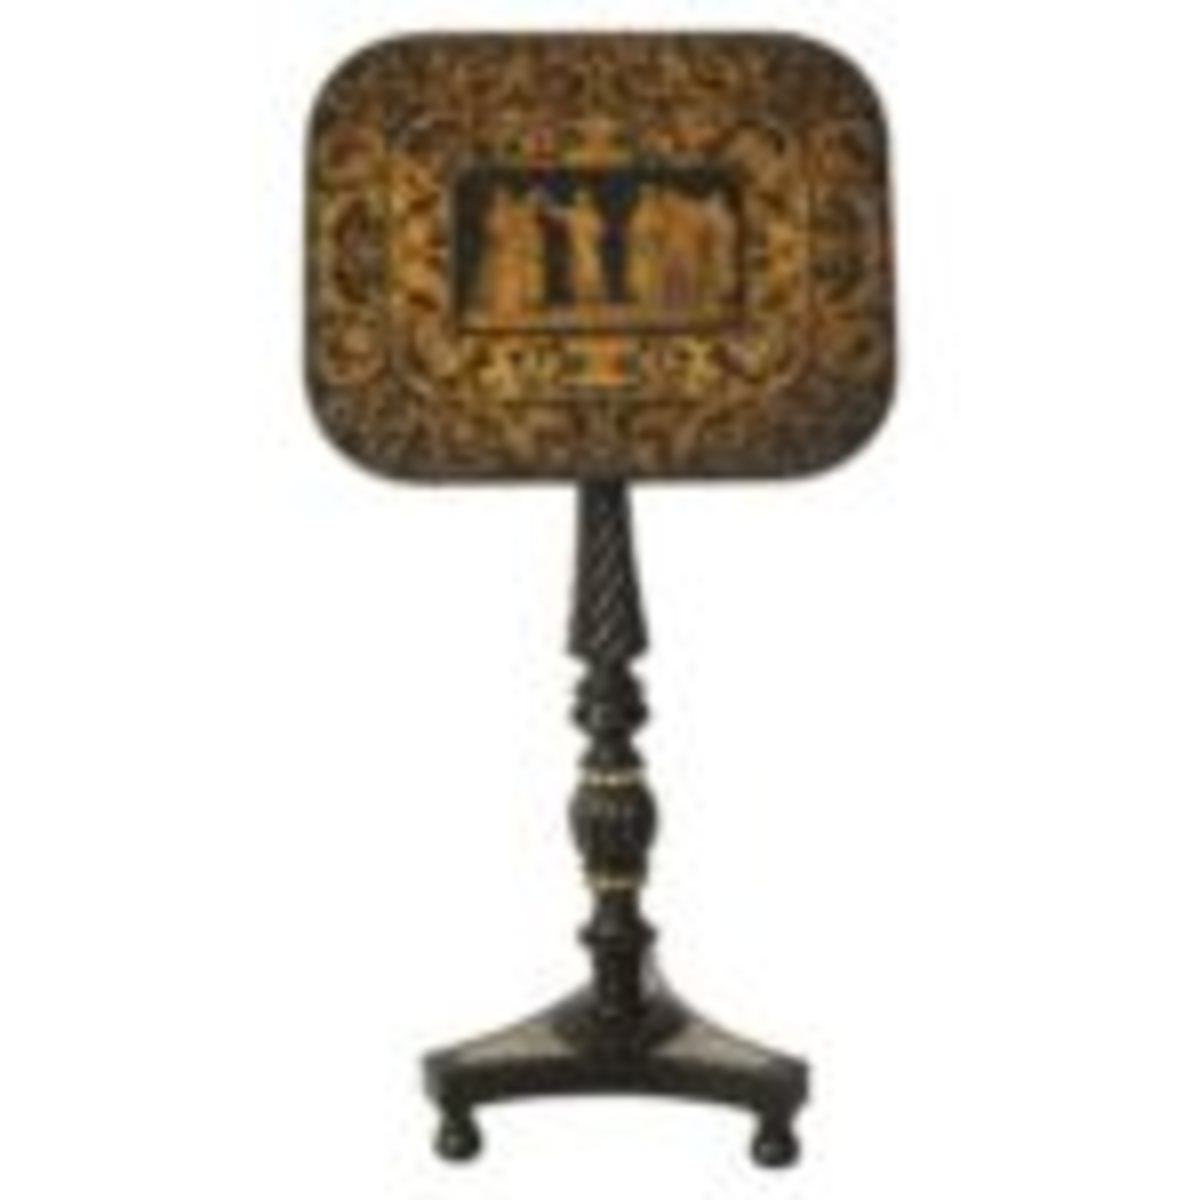 """Regency penwork tilt-top pedestal-base table depicting the death of Socrates, accented with bone decoration, 1800, 27 1/2"""" x 18"""" x 14 1/2"""", $4,600. Available at www.1stdibs.com. Courtesy of www.1stdibs.com"""